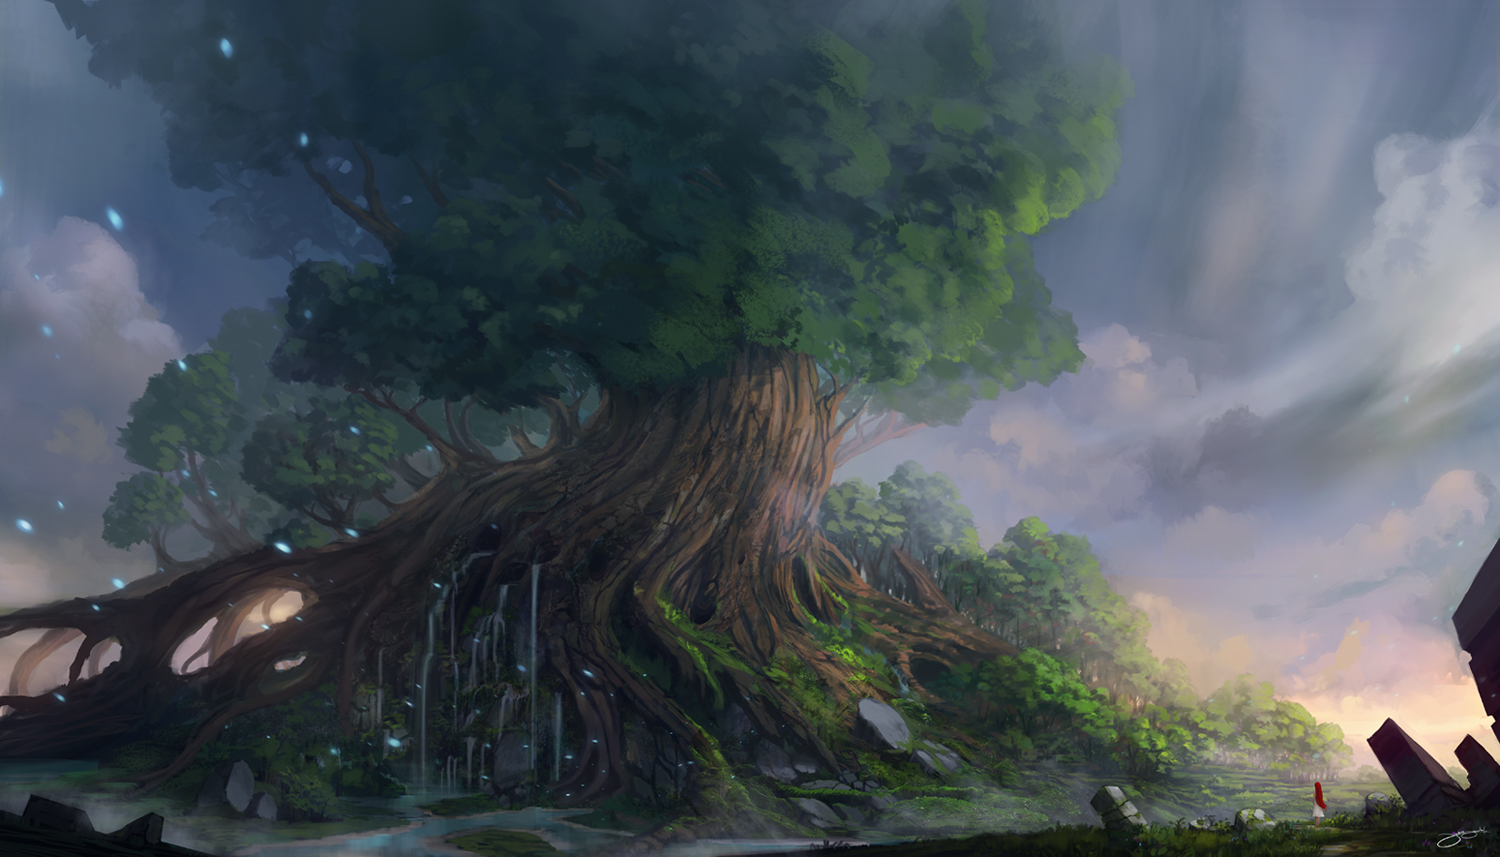 Yggdrasil wallpaper and background image 1500x857 id - Norse mythology 4k wallpaper ...